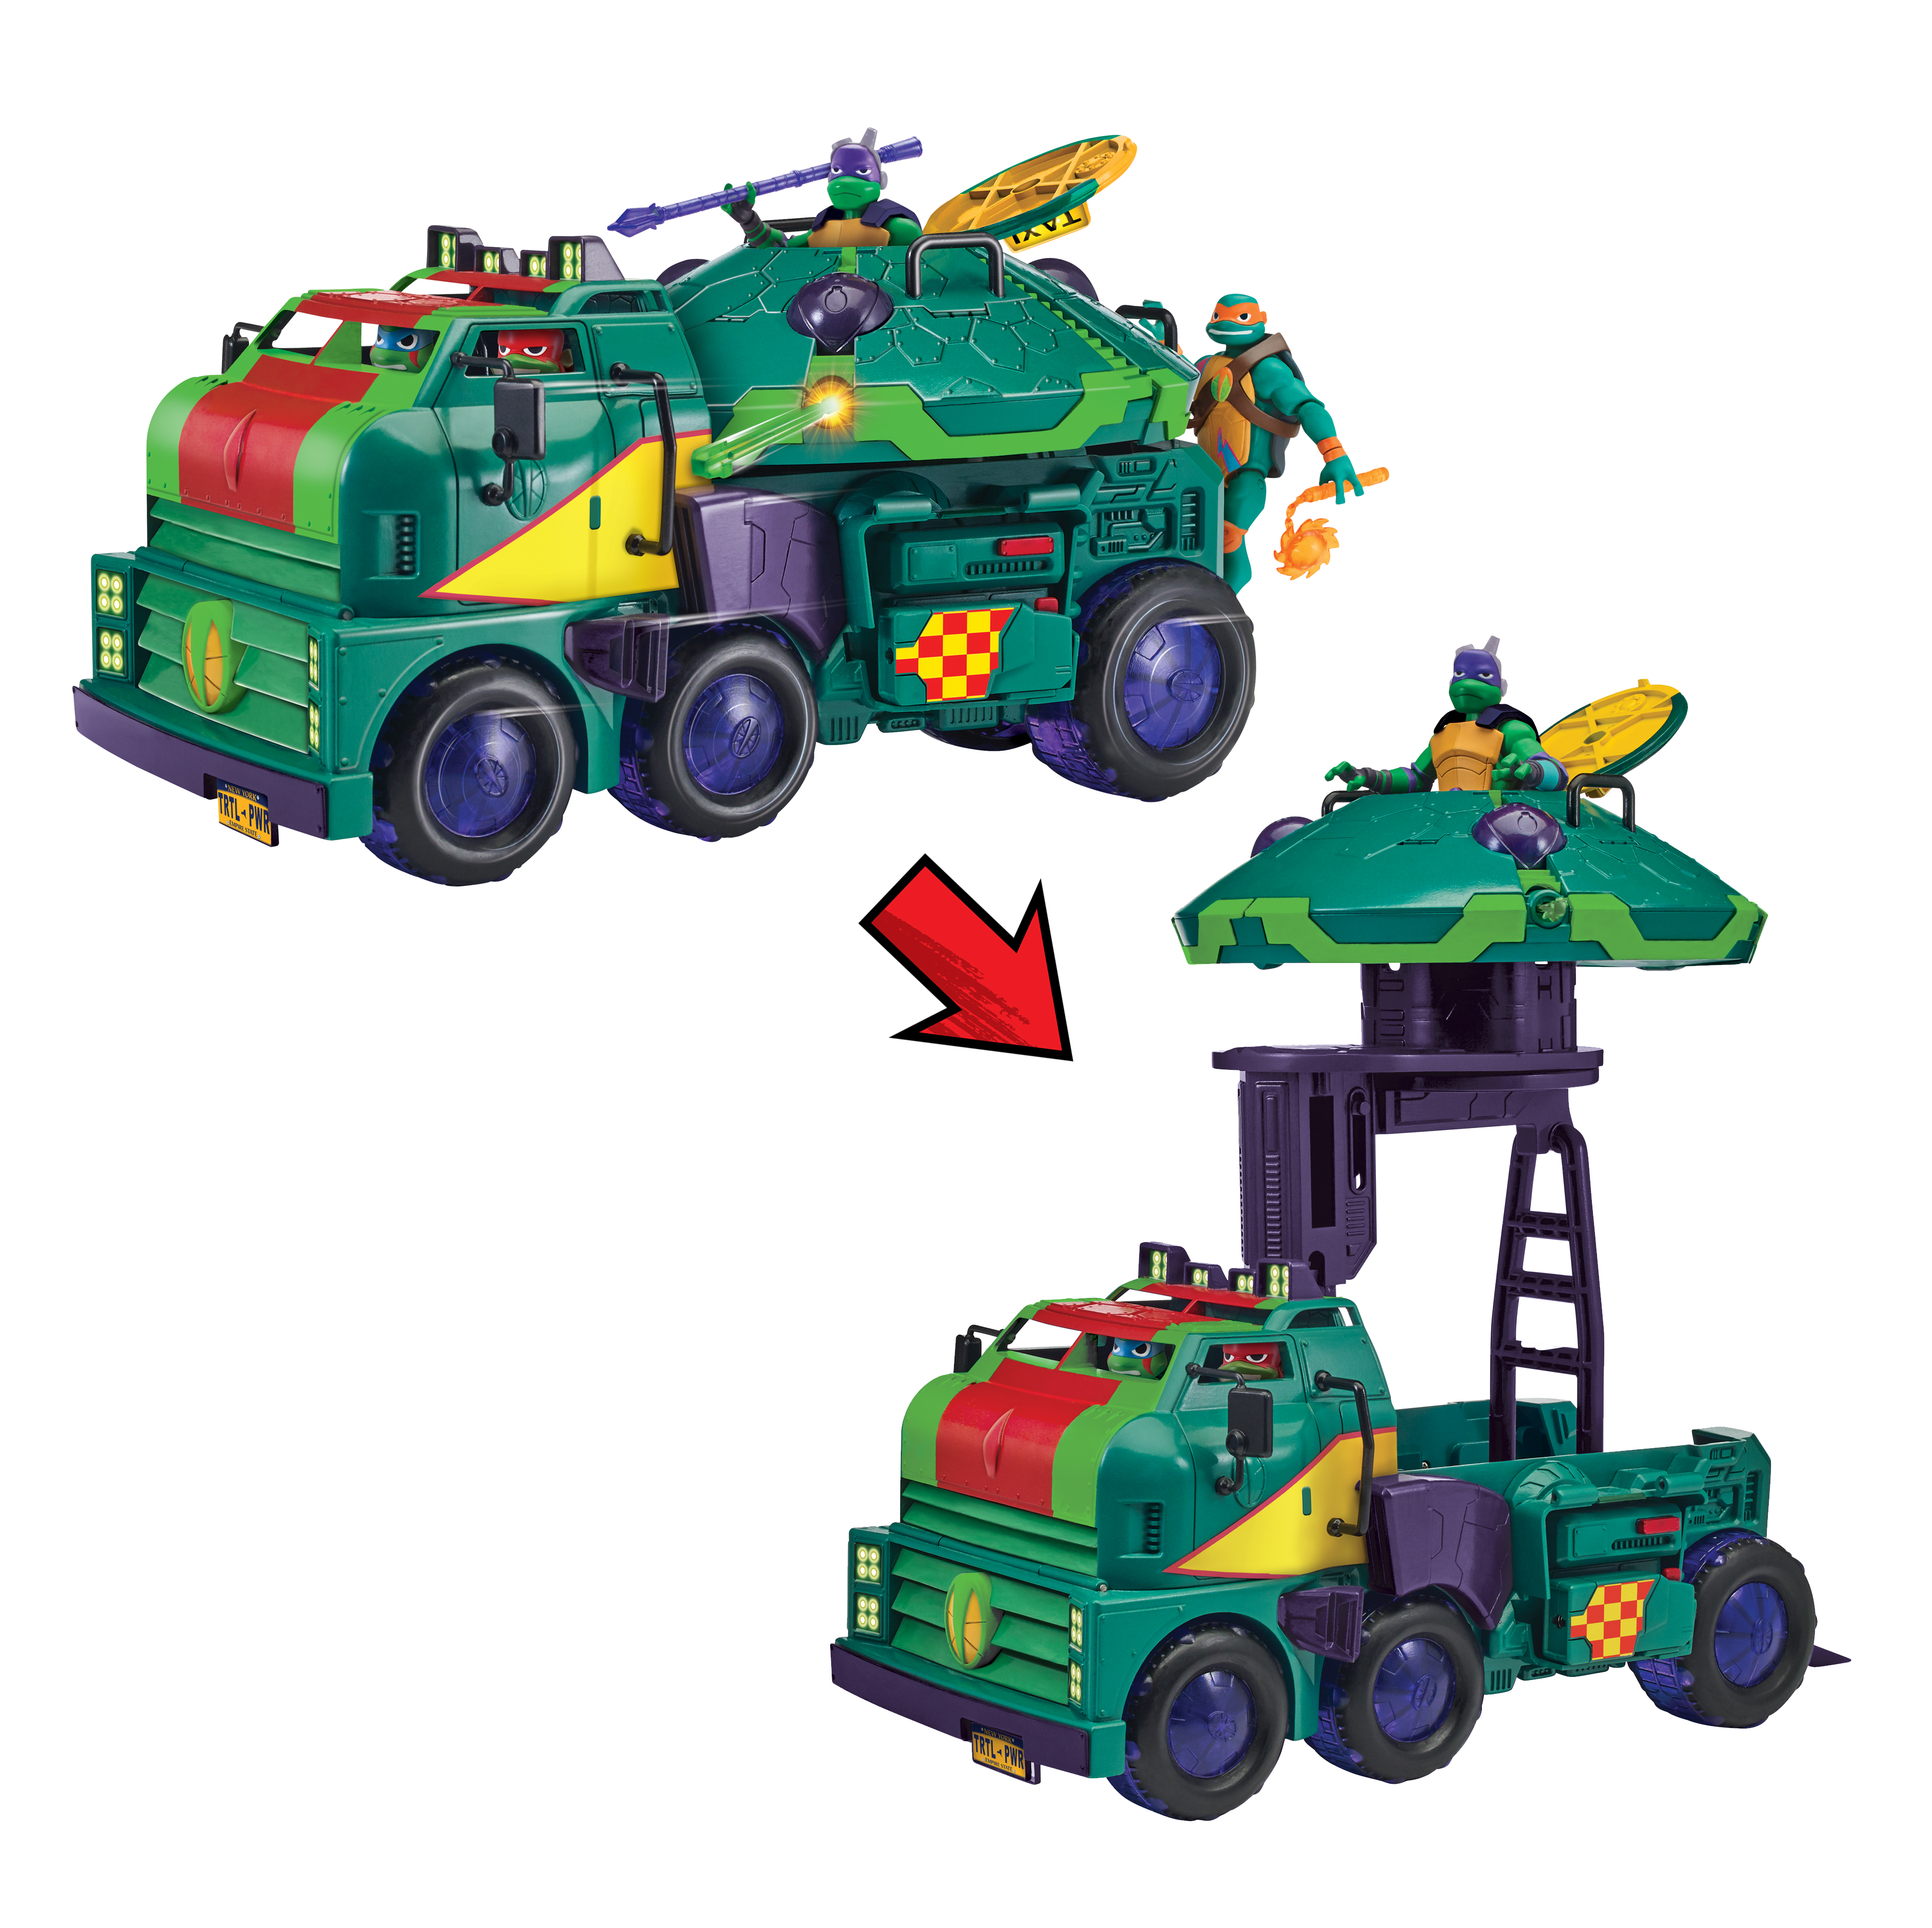 The Rise Of Teenage Mutant Ninja Turtles Toy Line From Playmates Toys Features Following